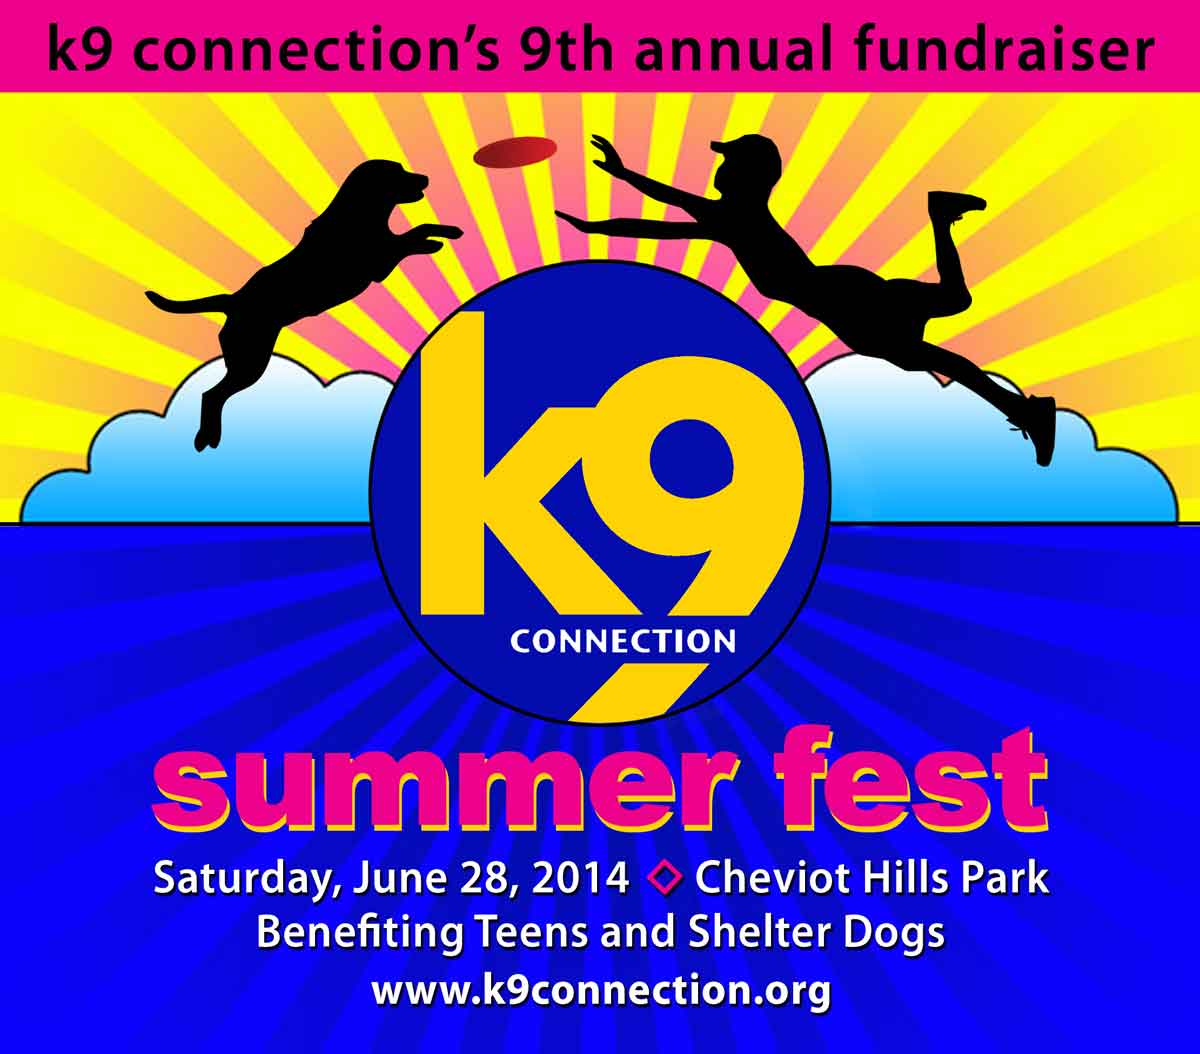 k9 connection flyer